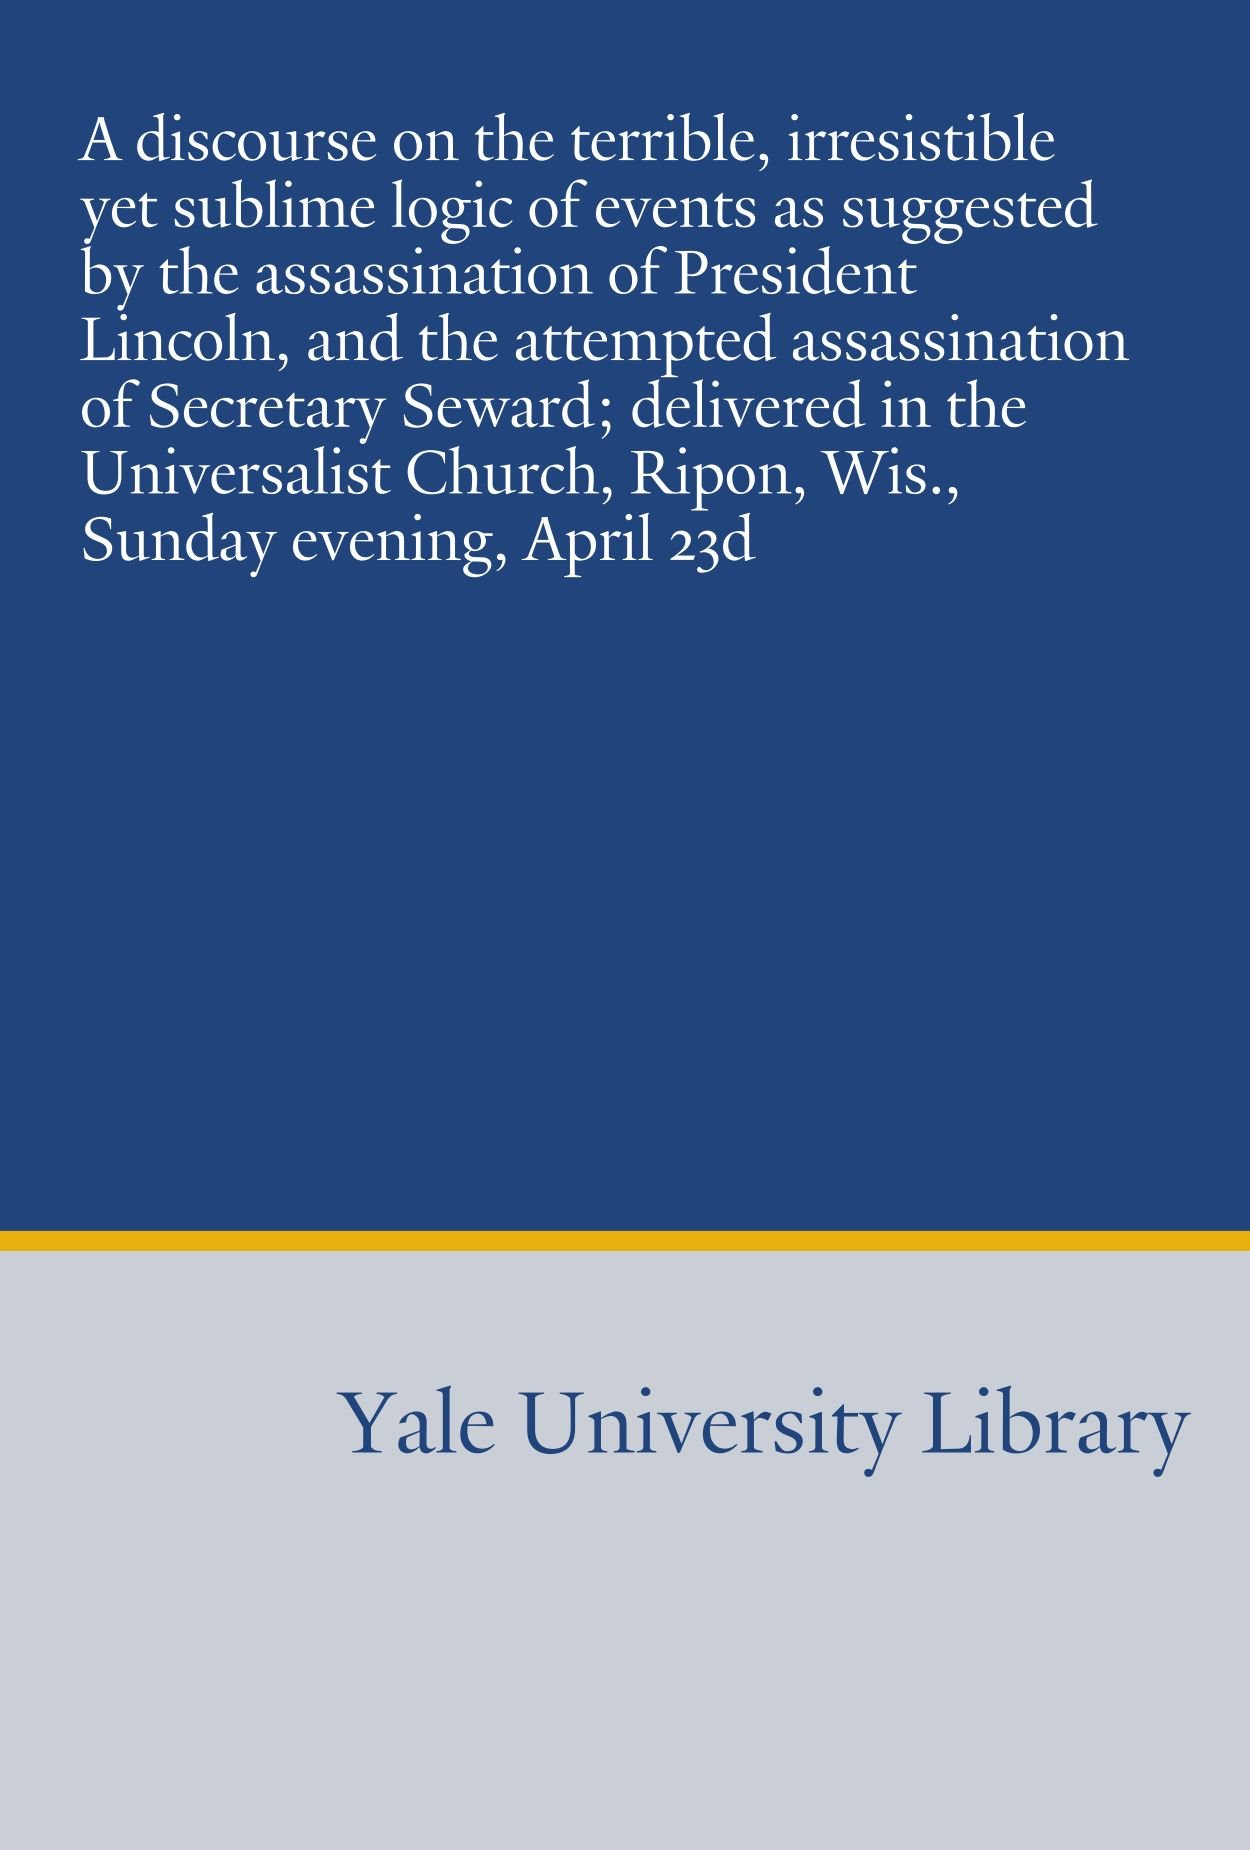 A discourse on the terrible, irresistible yet sublime logic of events as suggested by the assassination of President Lincoln, and the attempted ... Ripon, Wis., Sunday evening, April 23d pdf